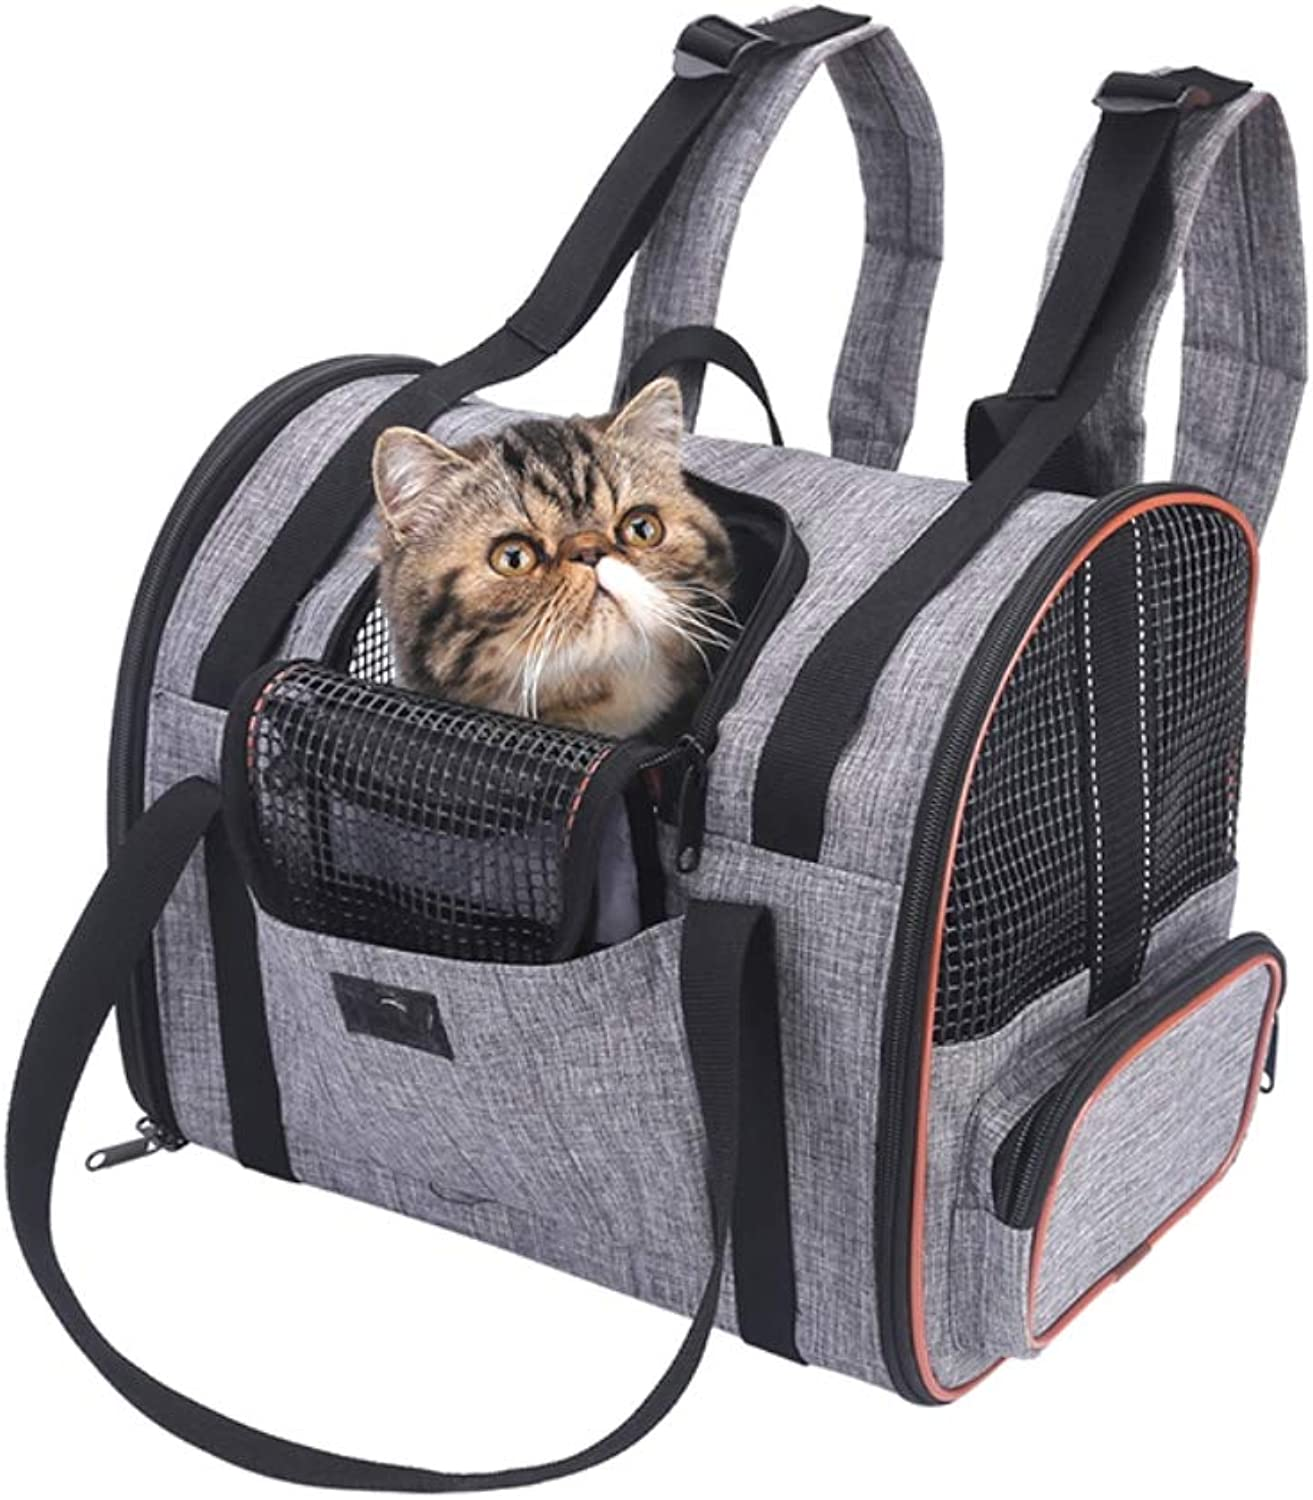 IW.HLMF Lightweight Pet Carrier Bag Dog Cat Travel Carrier Bags Collapsible Animal Backpack Bag Mesh Soft Side Dog Kennel Crate for Adult Baby Cats,B